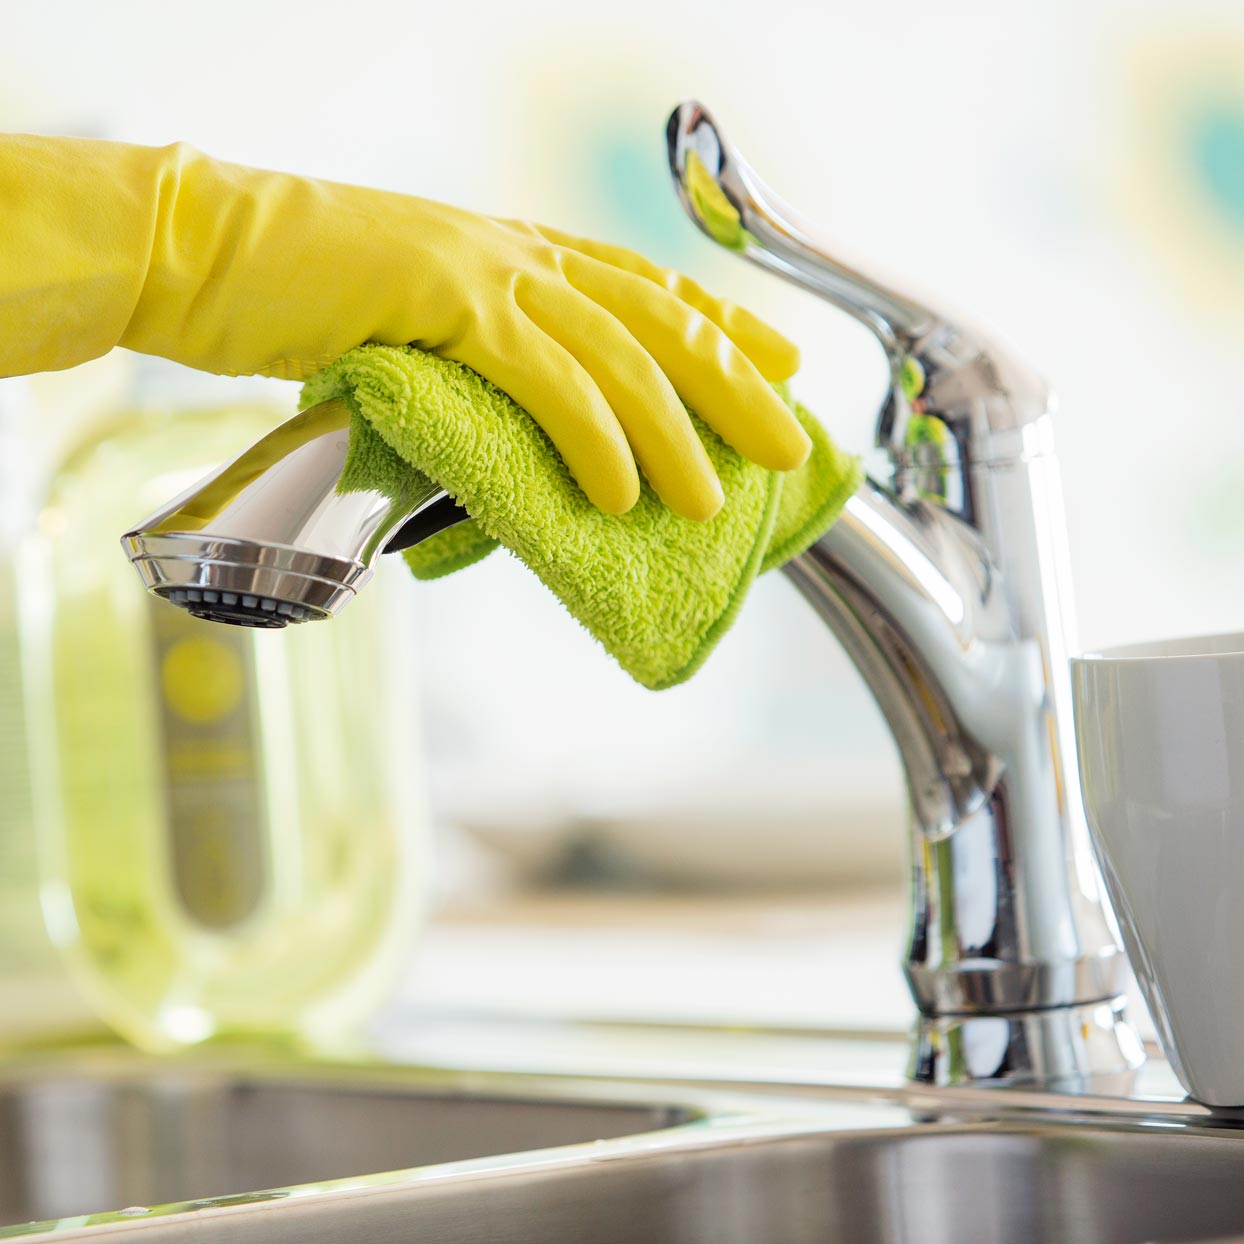 cleaning sink with rag and yellow gloves